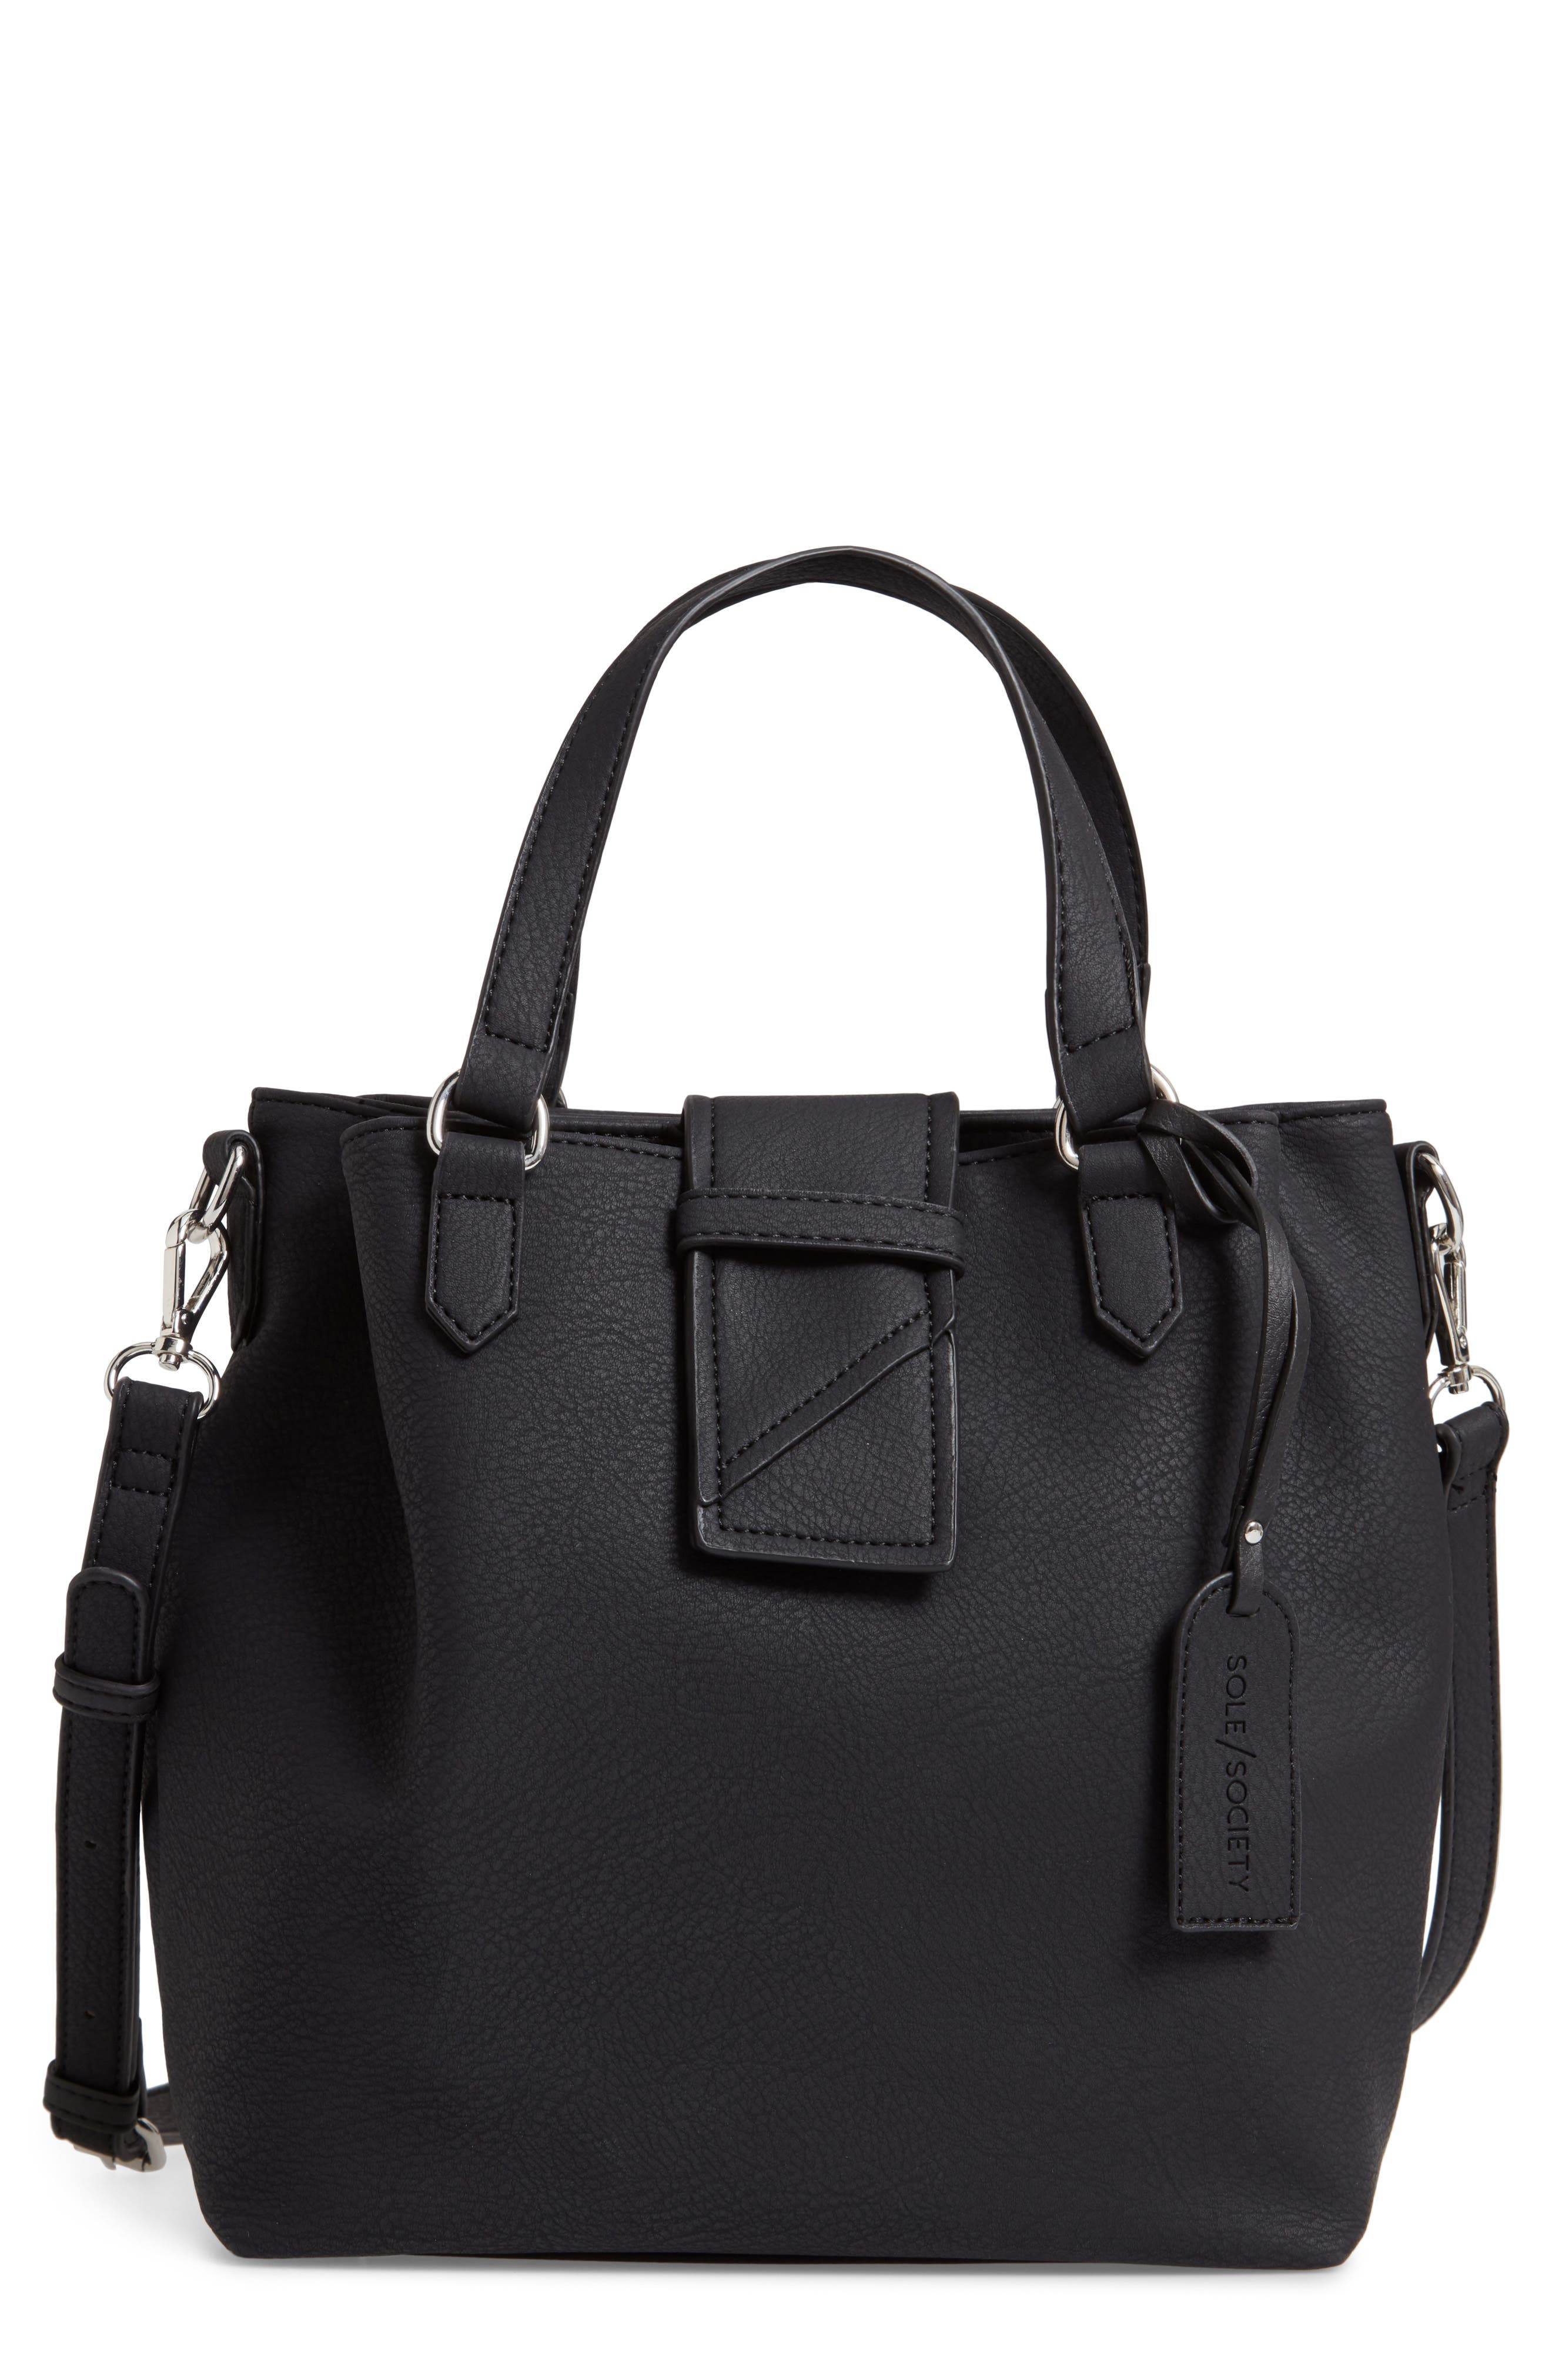 SOLE SOCIETY Valah Faux Leather Satchel, Main, color, BLACK